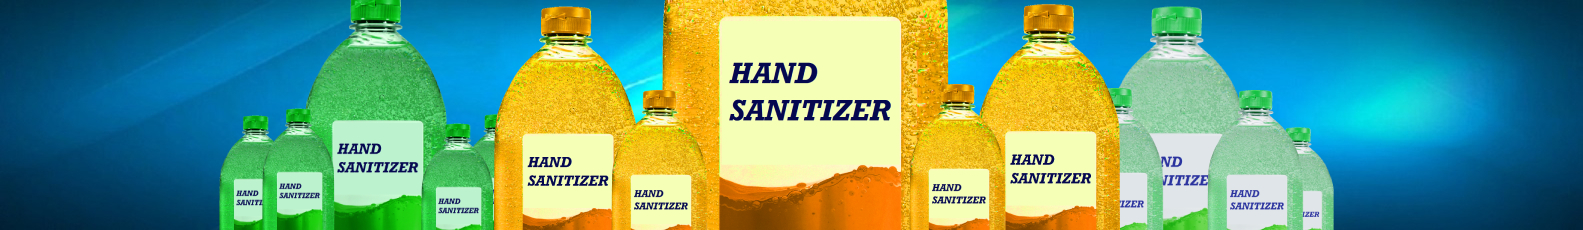 Fda Is Pushed To Further Relax Hand Sanitizer Rules Amid